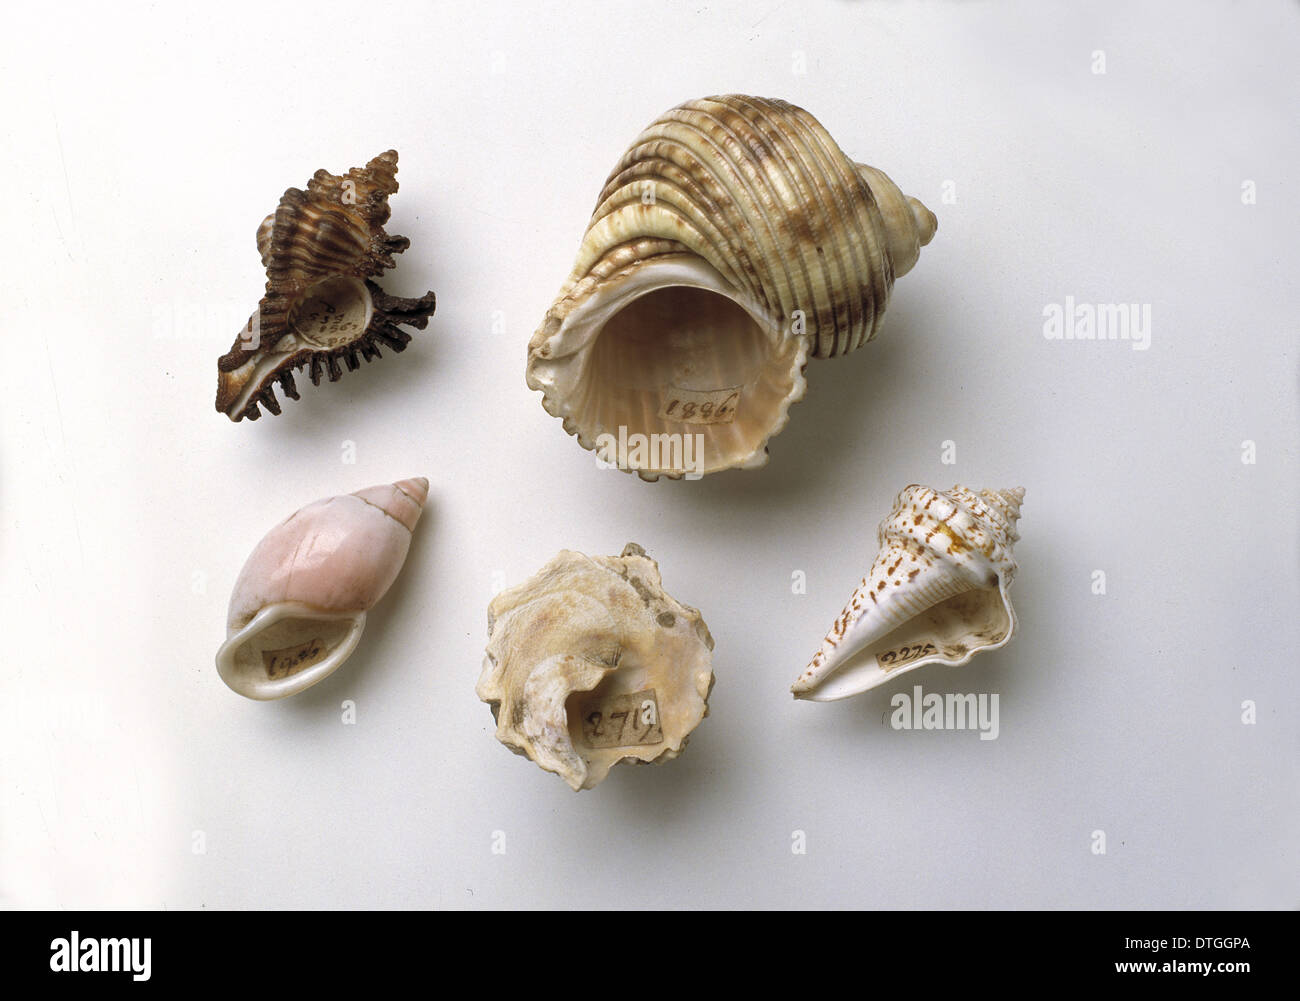 Sir Hans Sloane's collection of shells - Stock Image